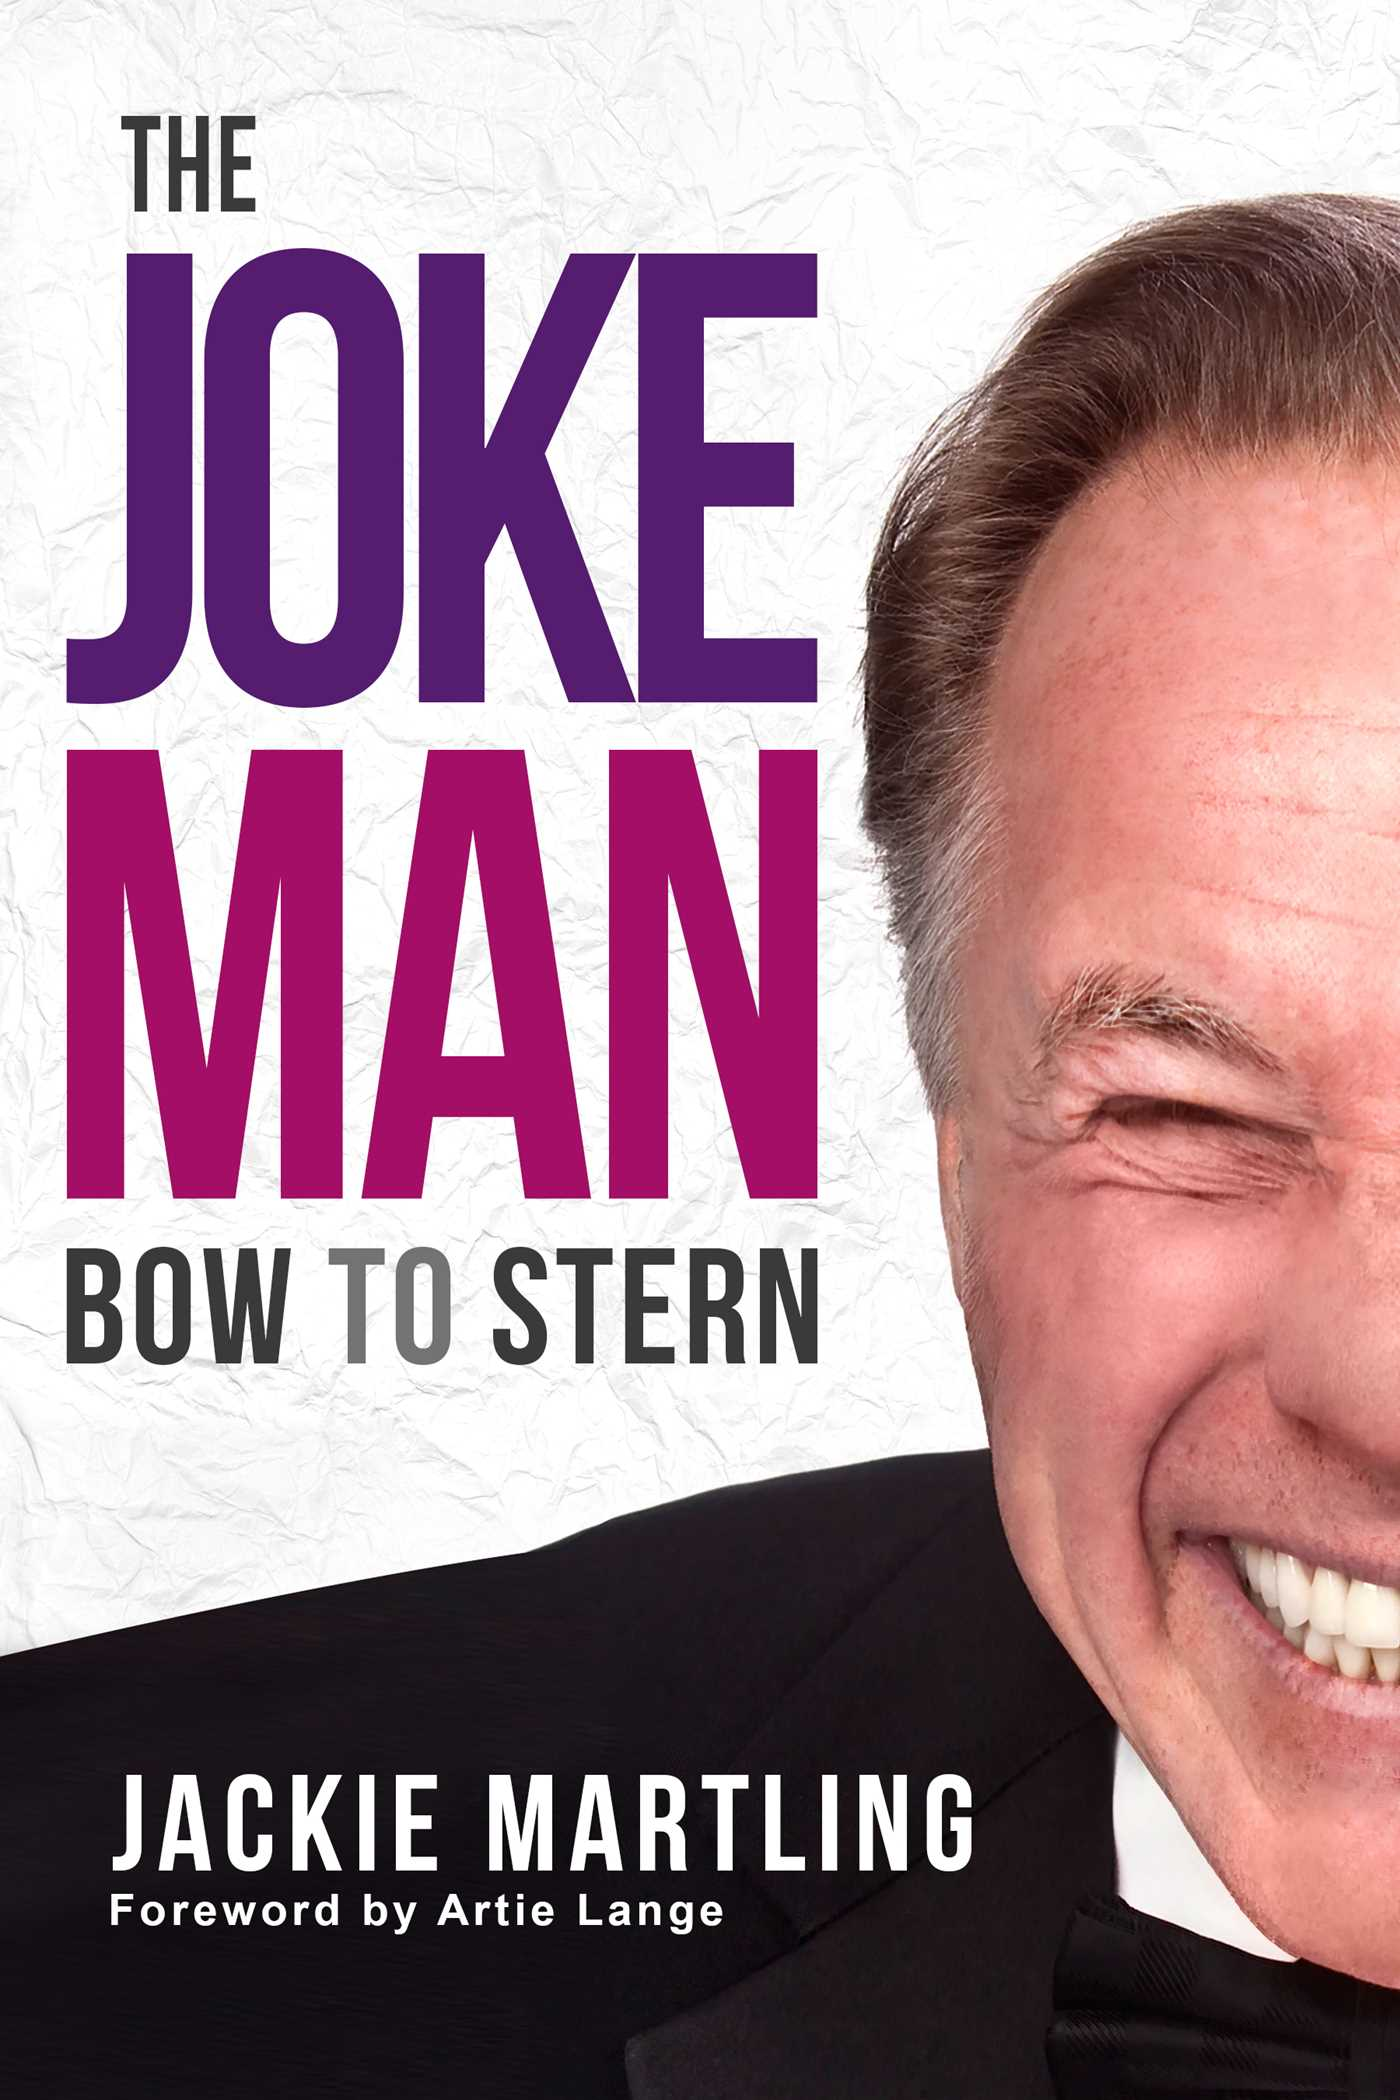 The joke man 9781682613894 hr